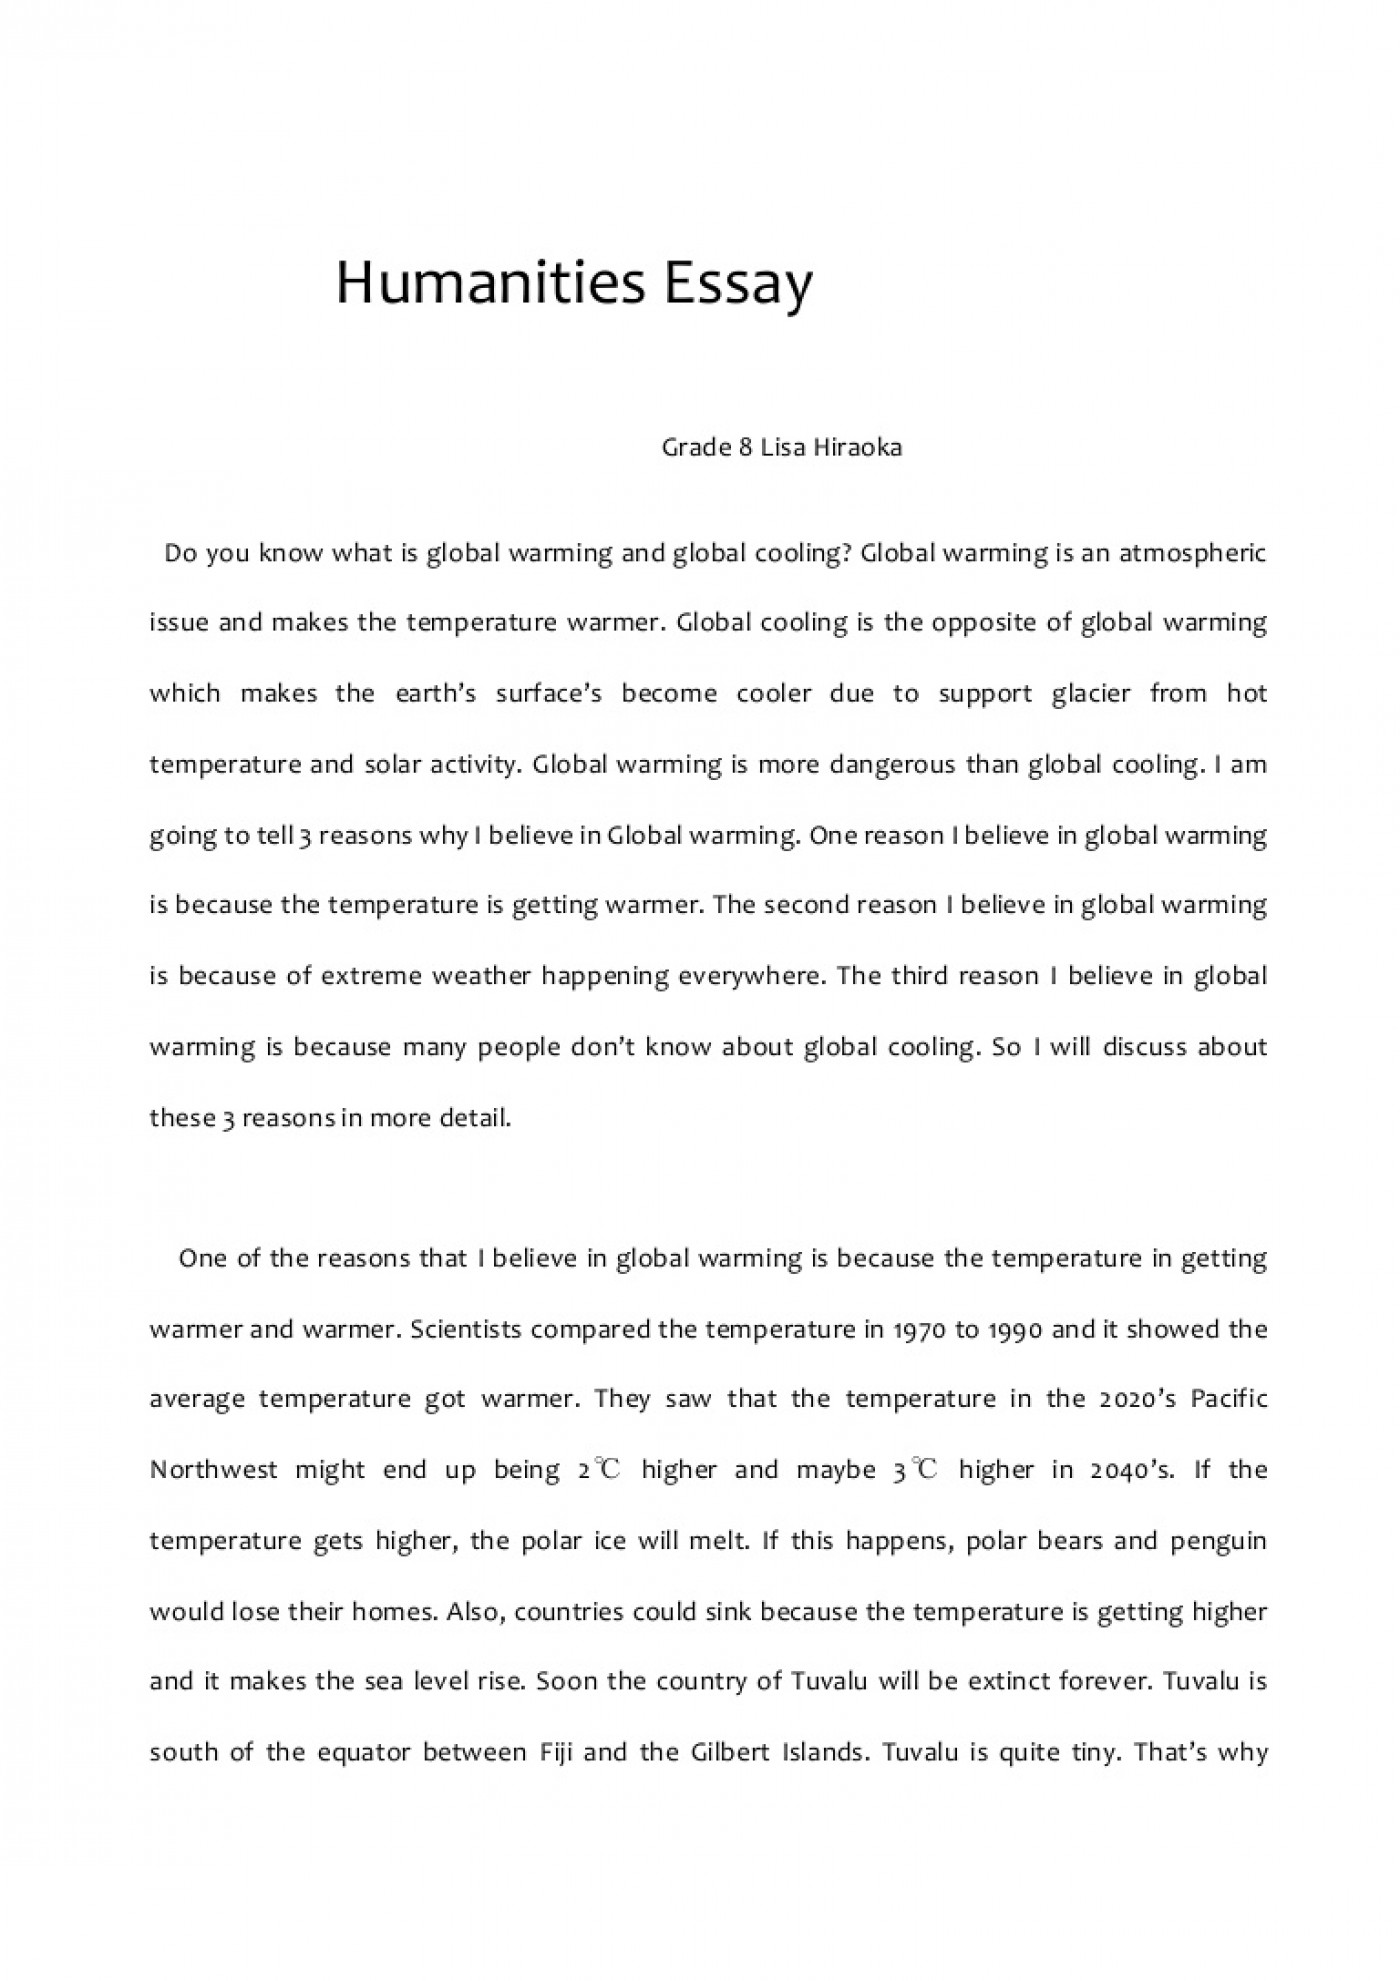 012 This I Believe Essay Topics Example Best Narrative Samples Humanitiesessay Phpapp02 Thumbn Good Fearsome Funny Prompt 1400